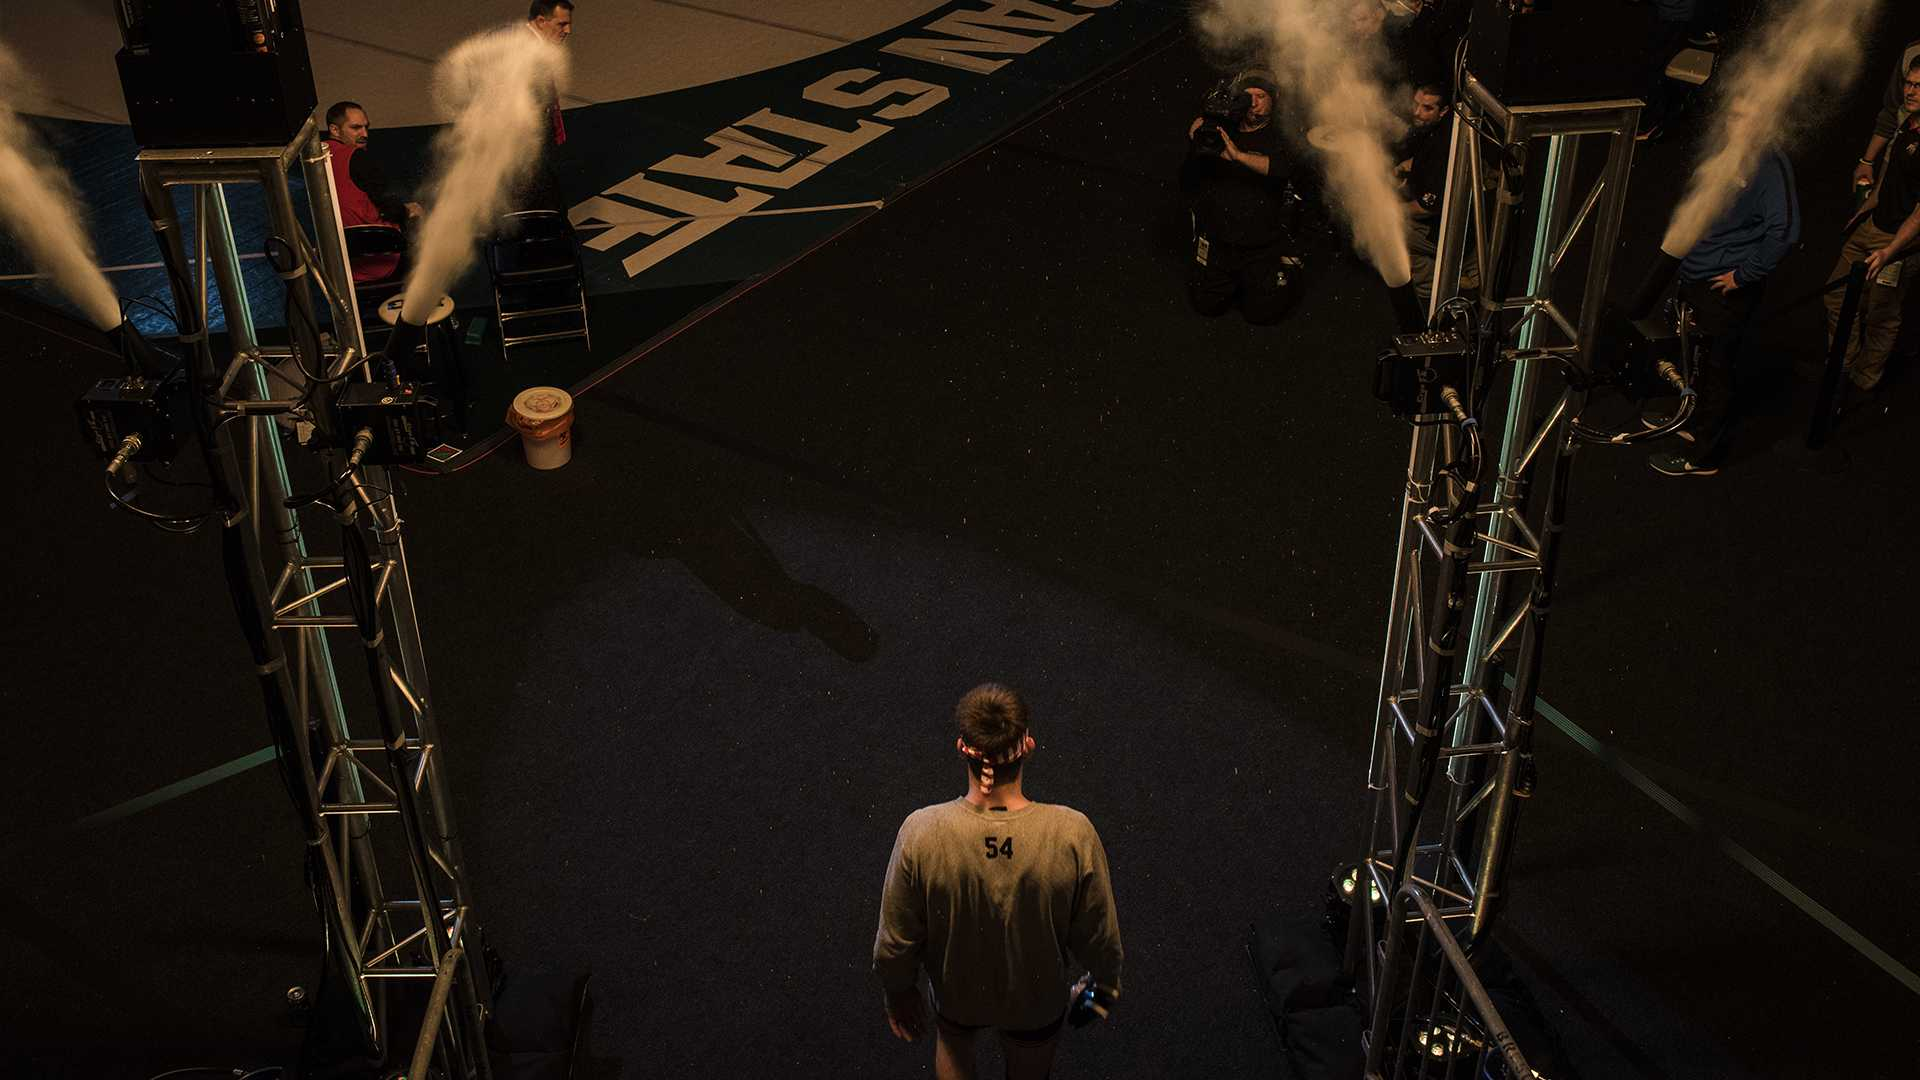 Iowa's 149-pound Brandon Sorensen prepares to walk out for the finals during the Big Ten Wrestling Championships in East Lansing, MI. Sorensen ended up losing to Penn State's Zane Retherford in a decision, 2-0. (Ben Allan Smith/The Daily Iowan)